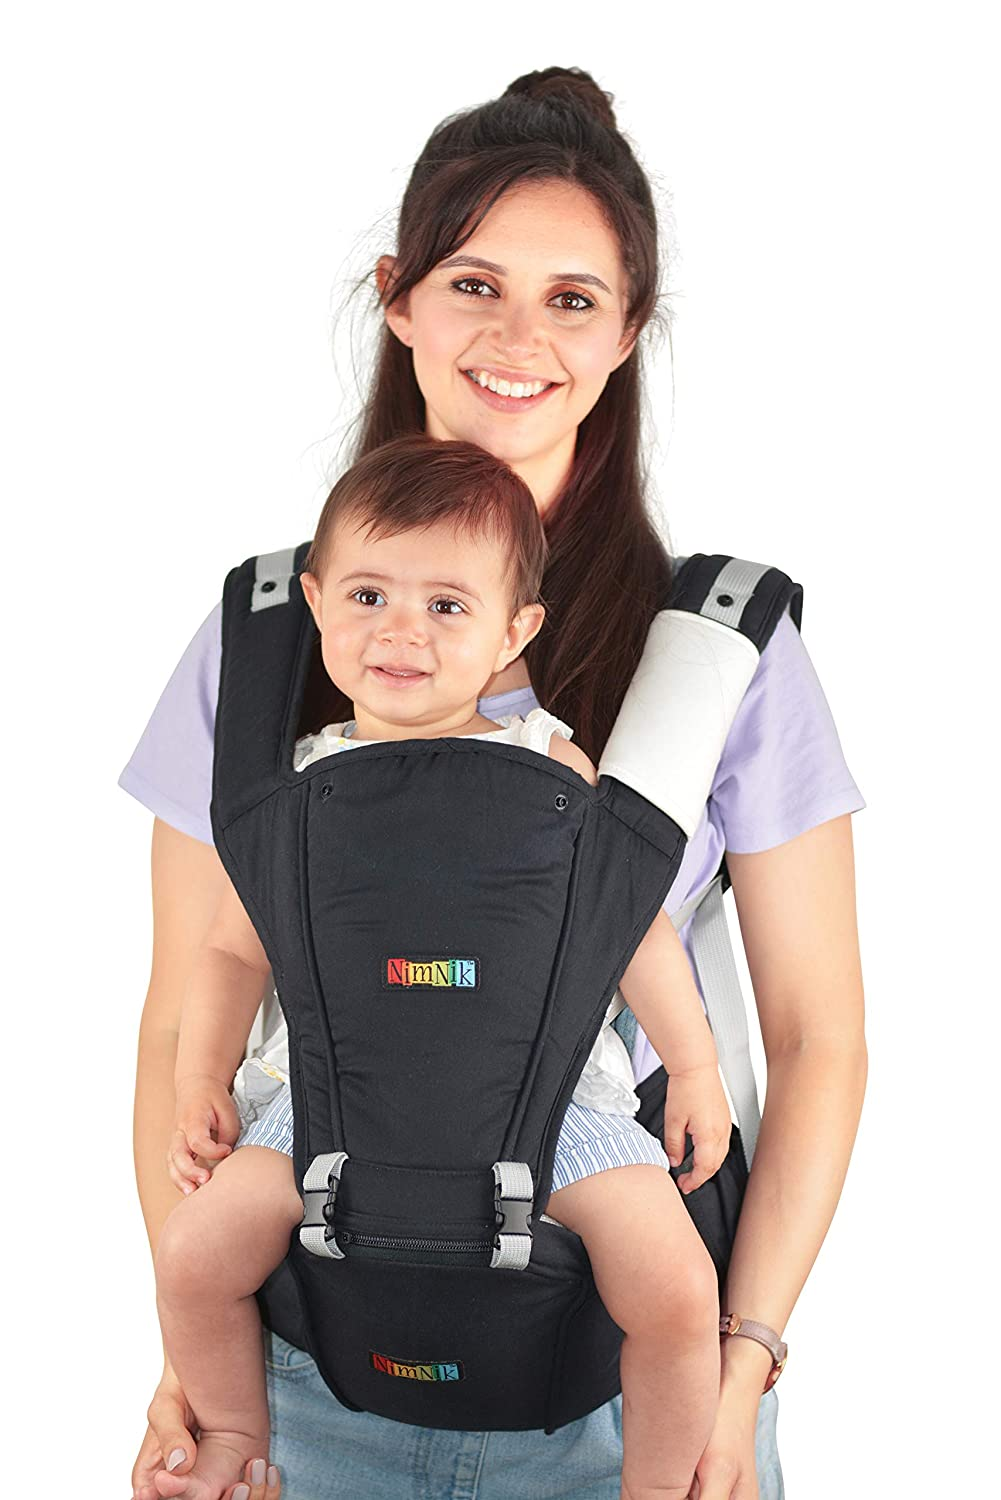 NimNik Baby Sling Carrier Ergonomics Lightweight Hipseat with Lumbar Support, 4 in One Back 2 Front Facing Comfort Positions NMNK-HS01